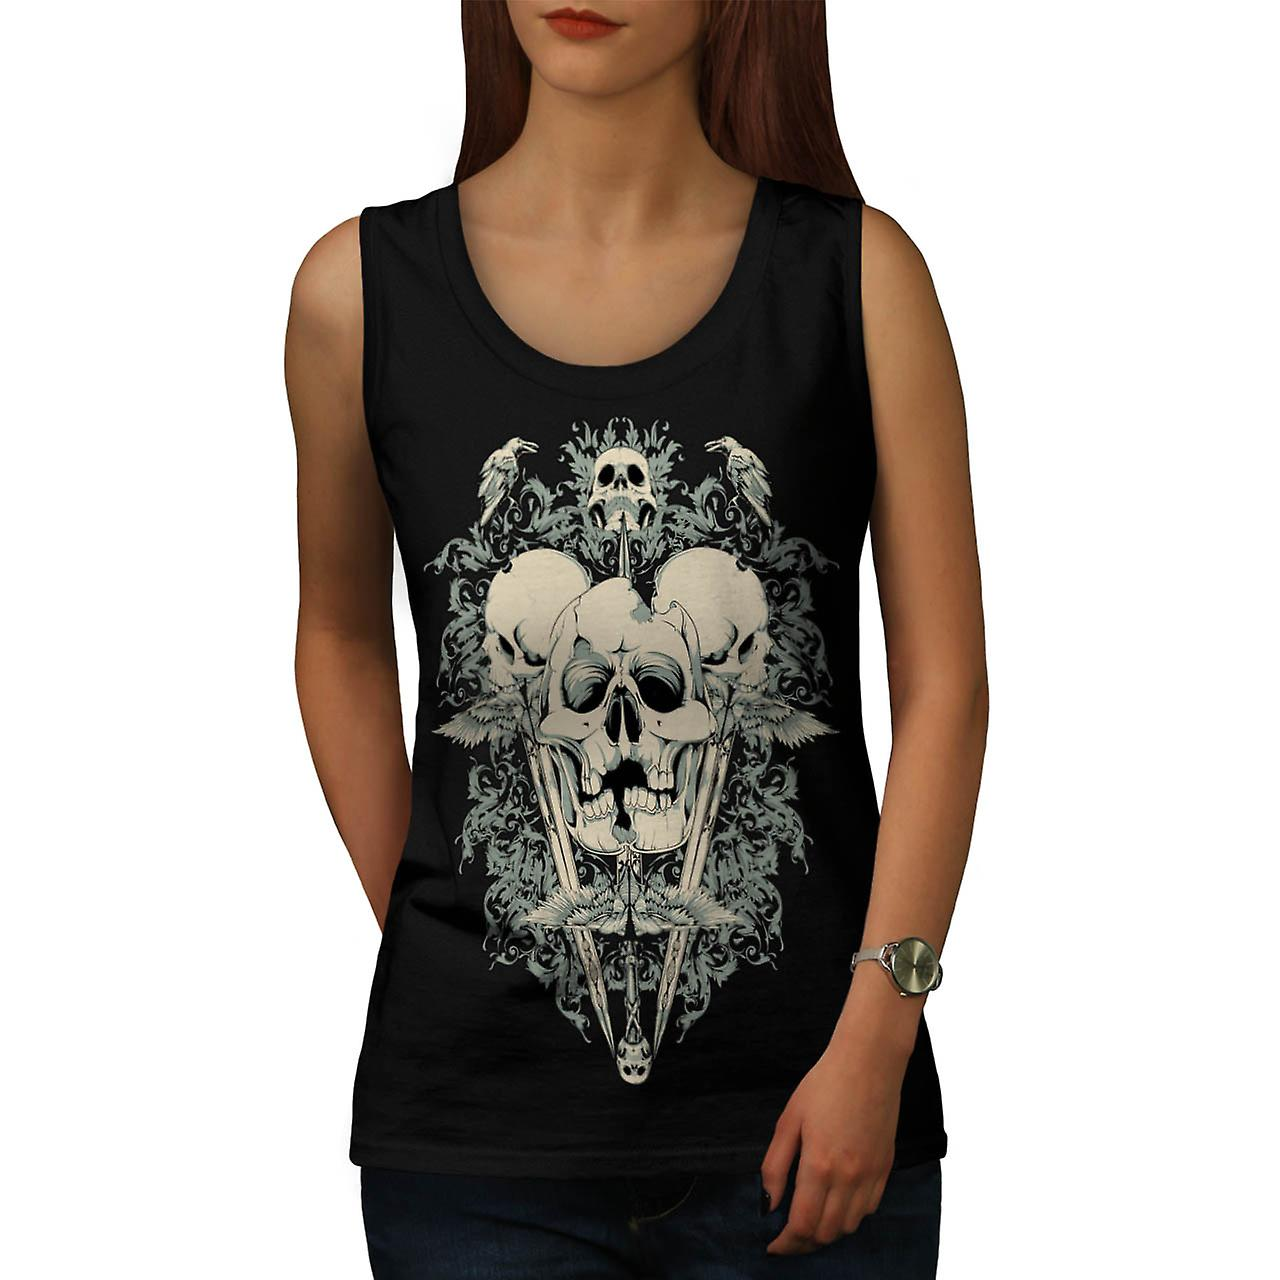 Deadly Knife Crow Skull Crack Teeth Women Black Tank Top | Wellcoda